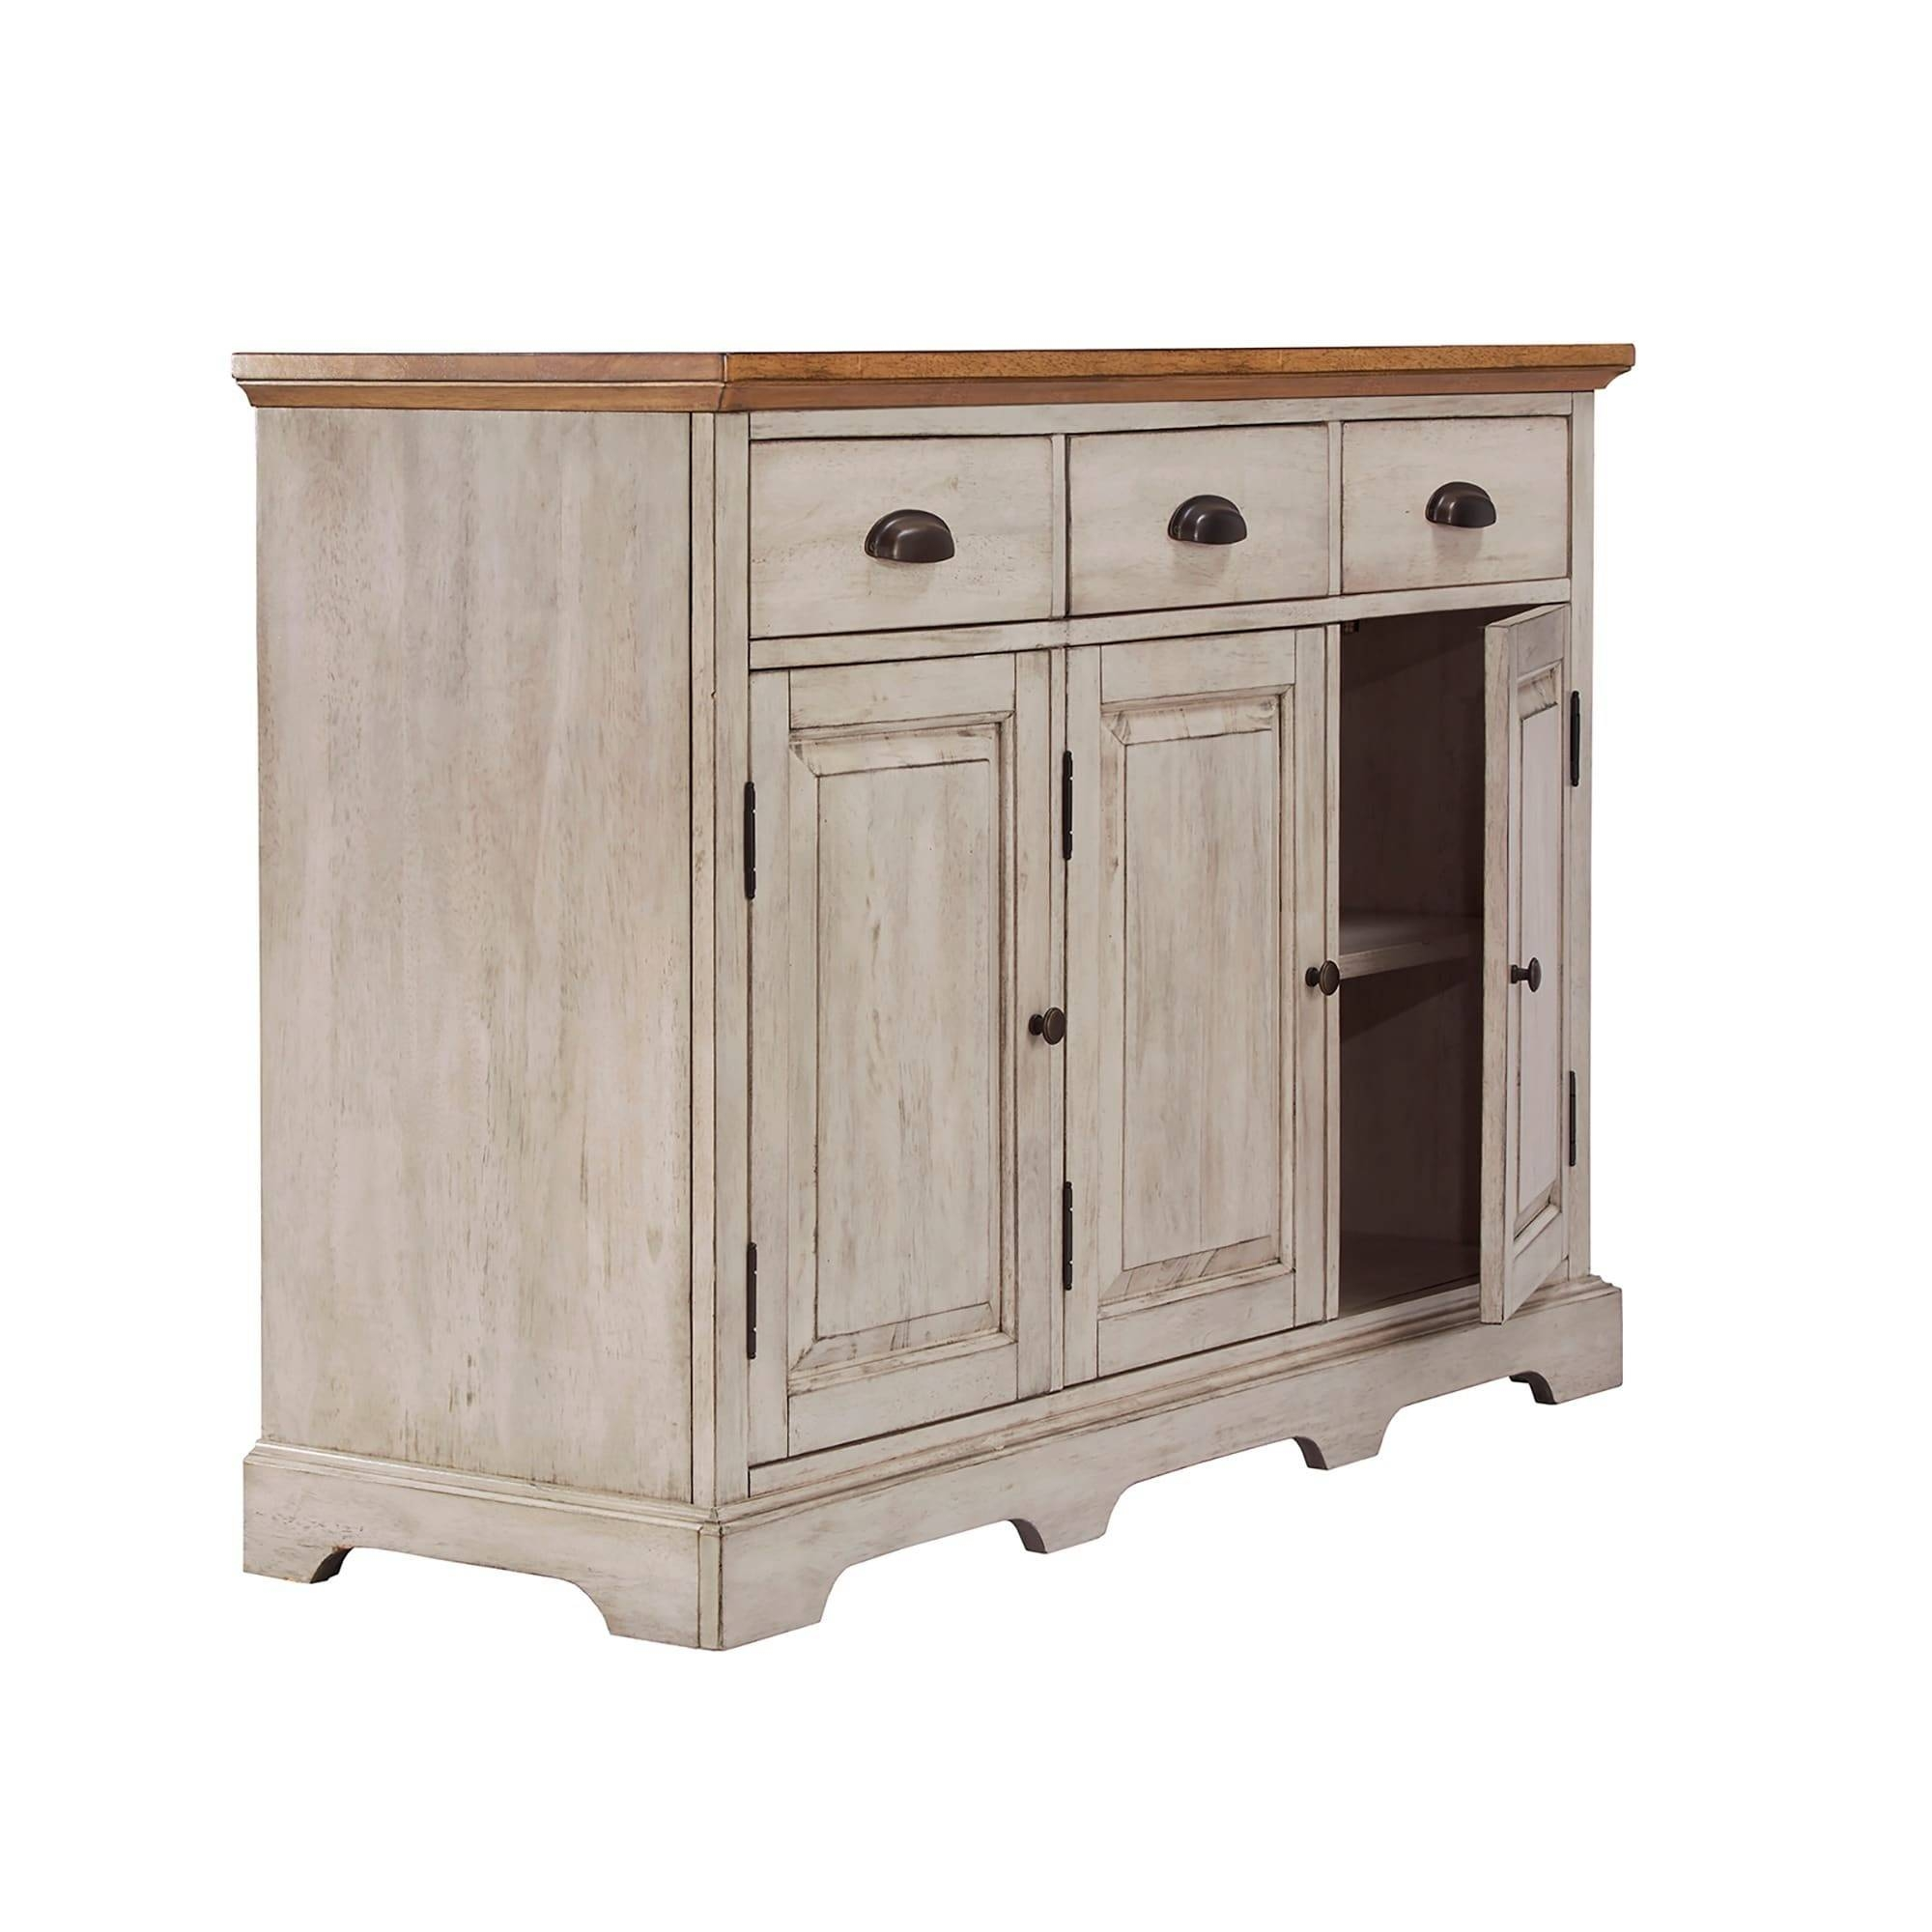 Eleanor Two Tone Wood Cabinet Buffet Serverinspire Q Classic Pertaining To 50 Inch Sideboards (View 10 of 15)